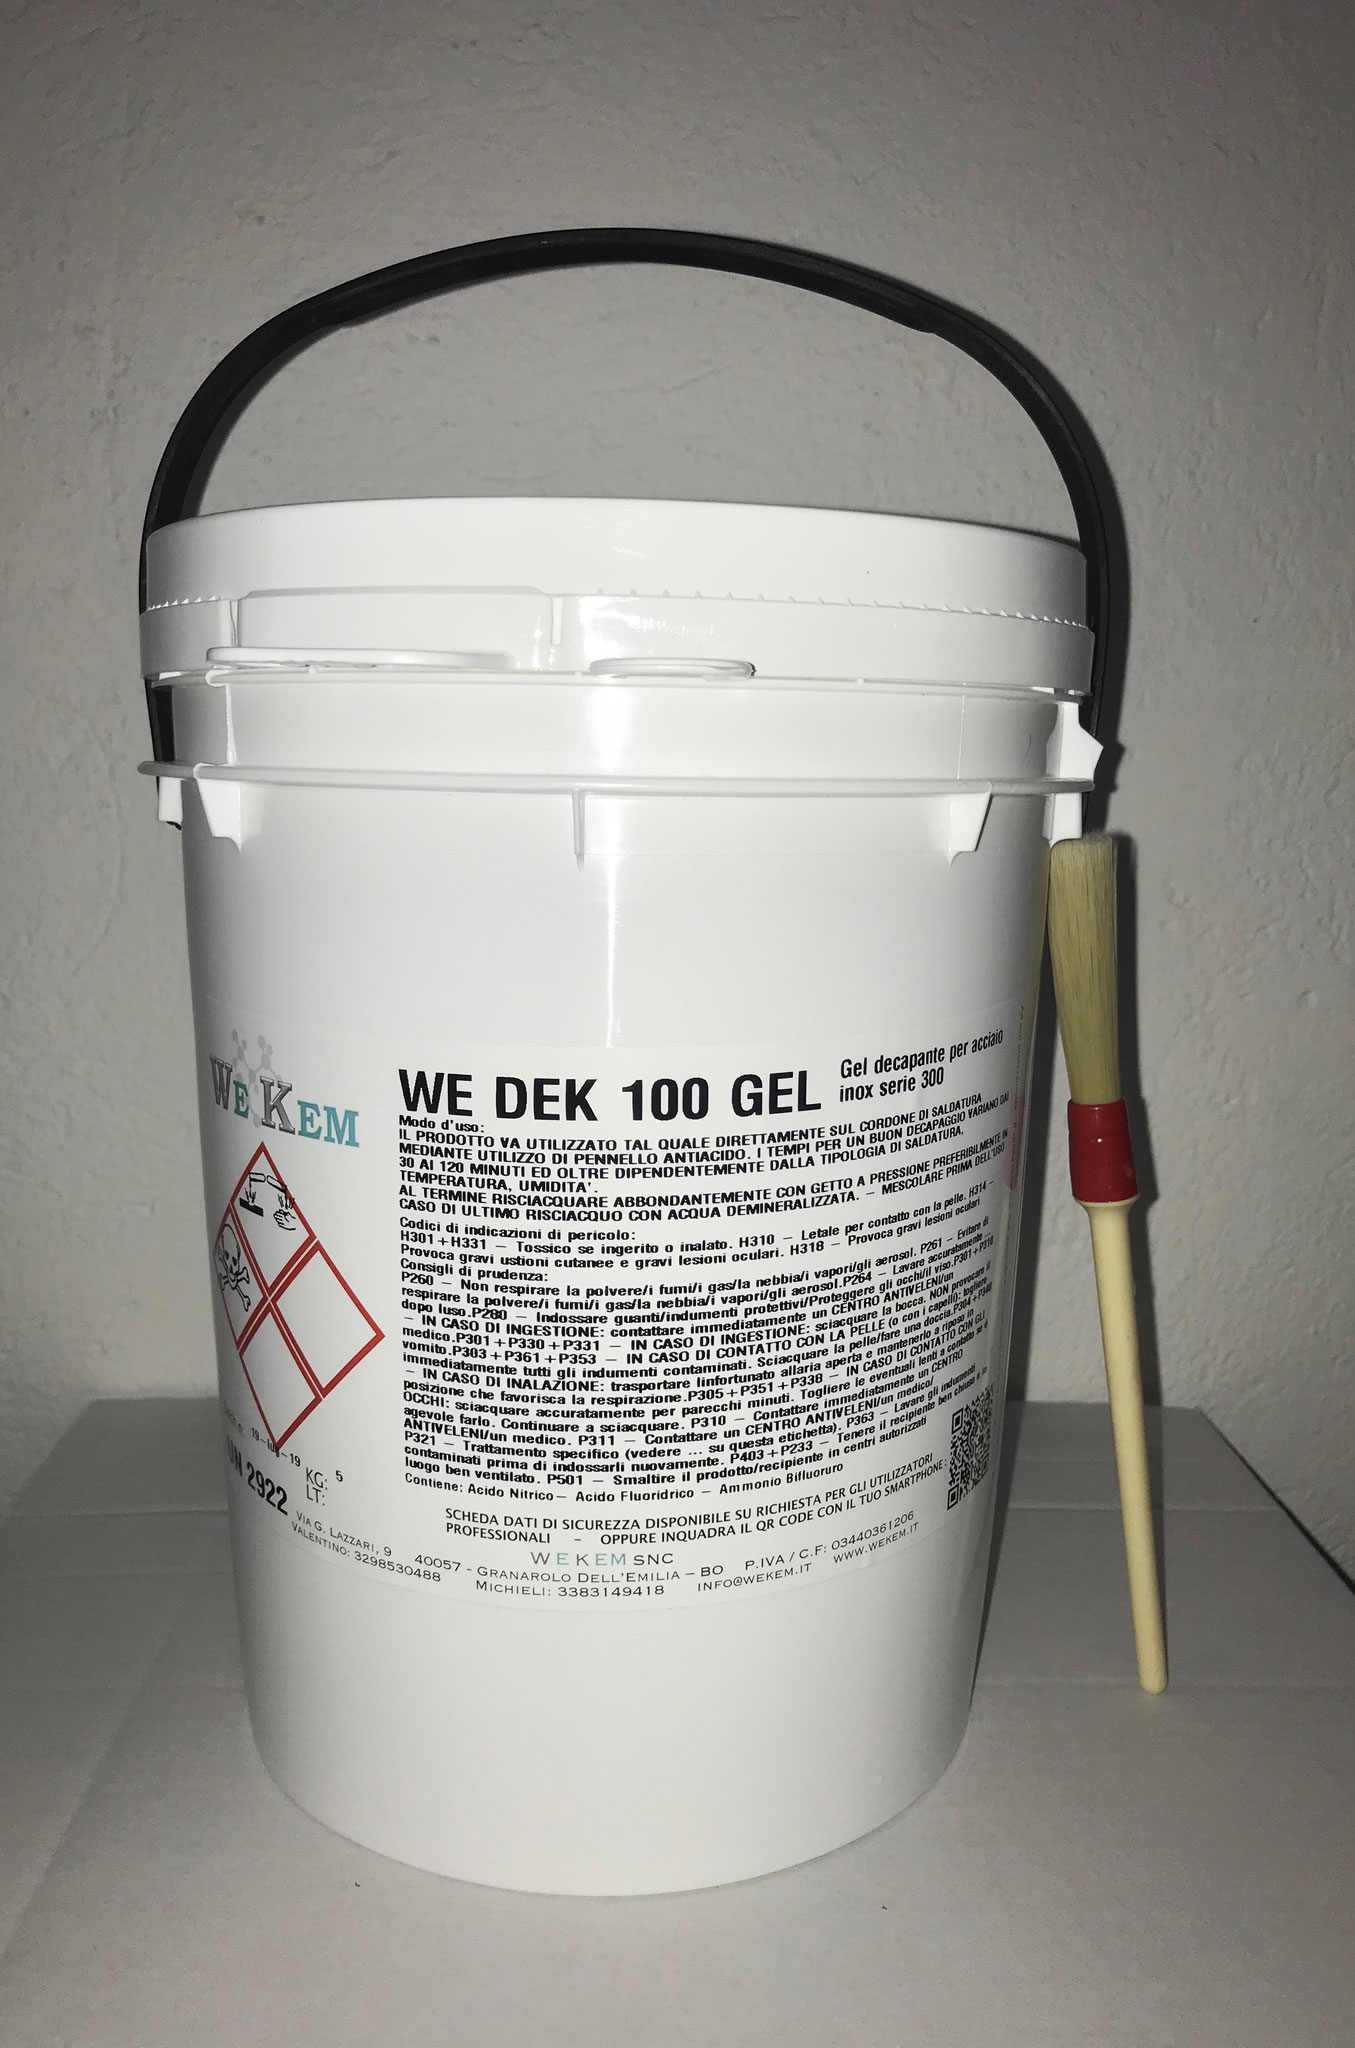 Gel de decapado para acero inoxidable 5KG